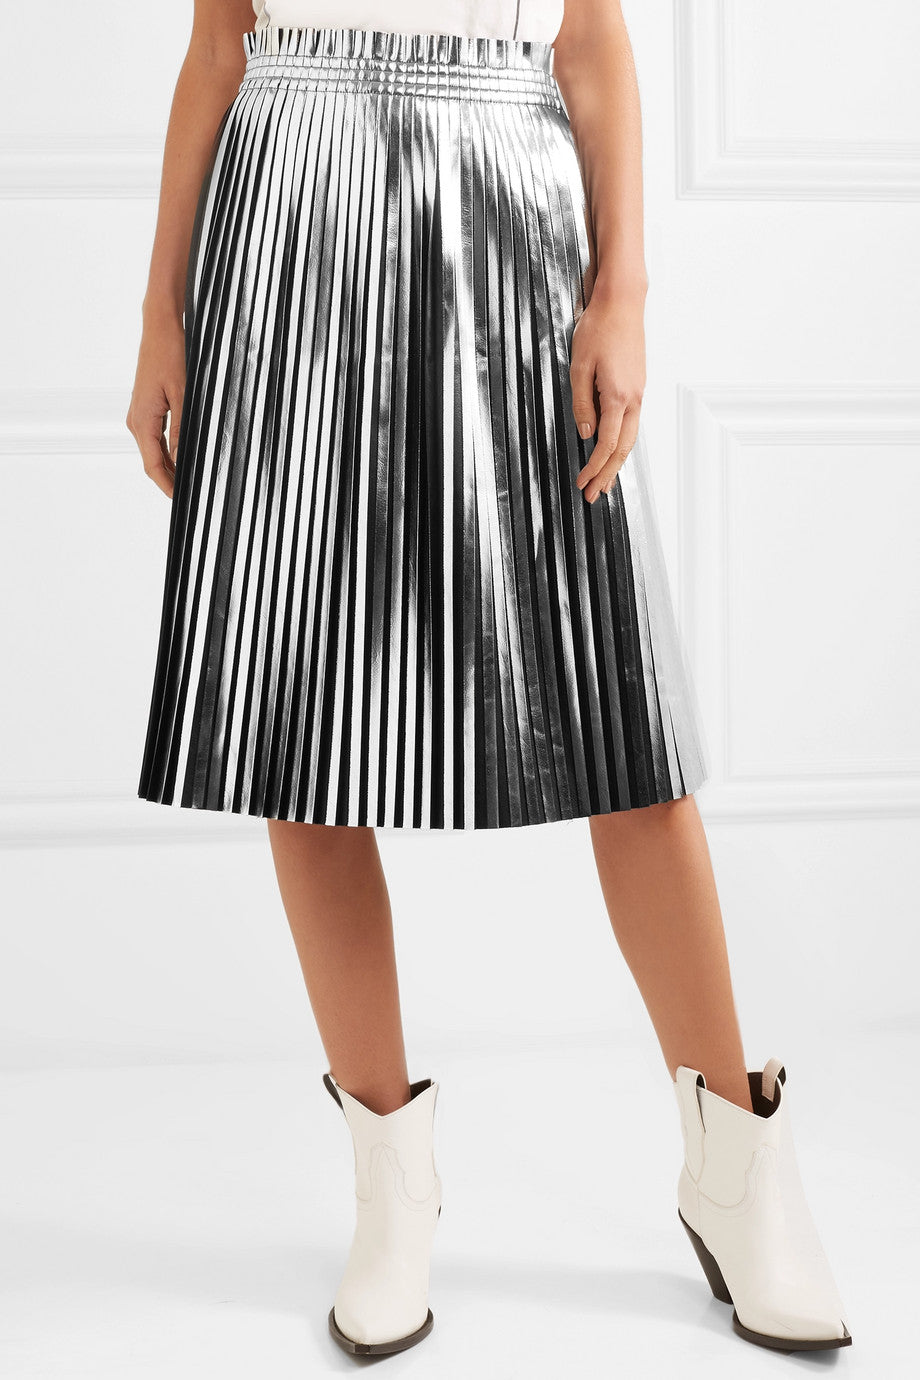 MM6 MAISON MARGIELA | Metallic Pleated Skirt